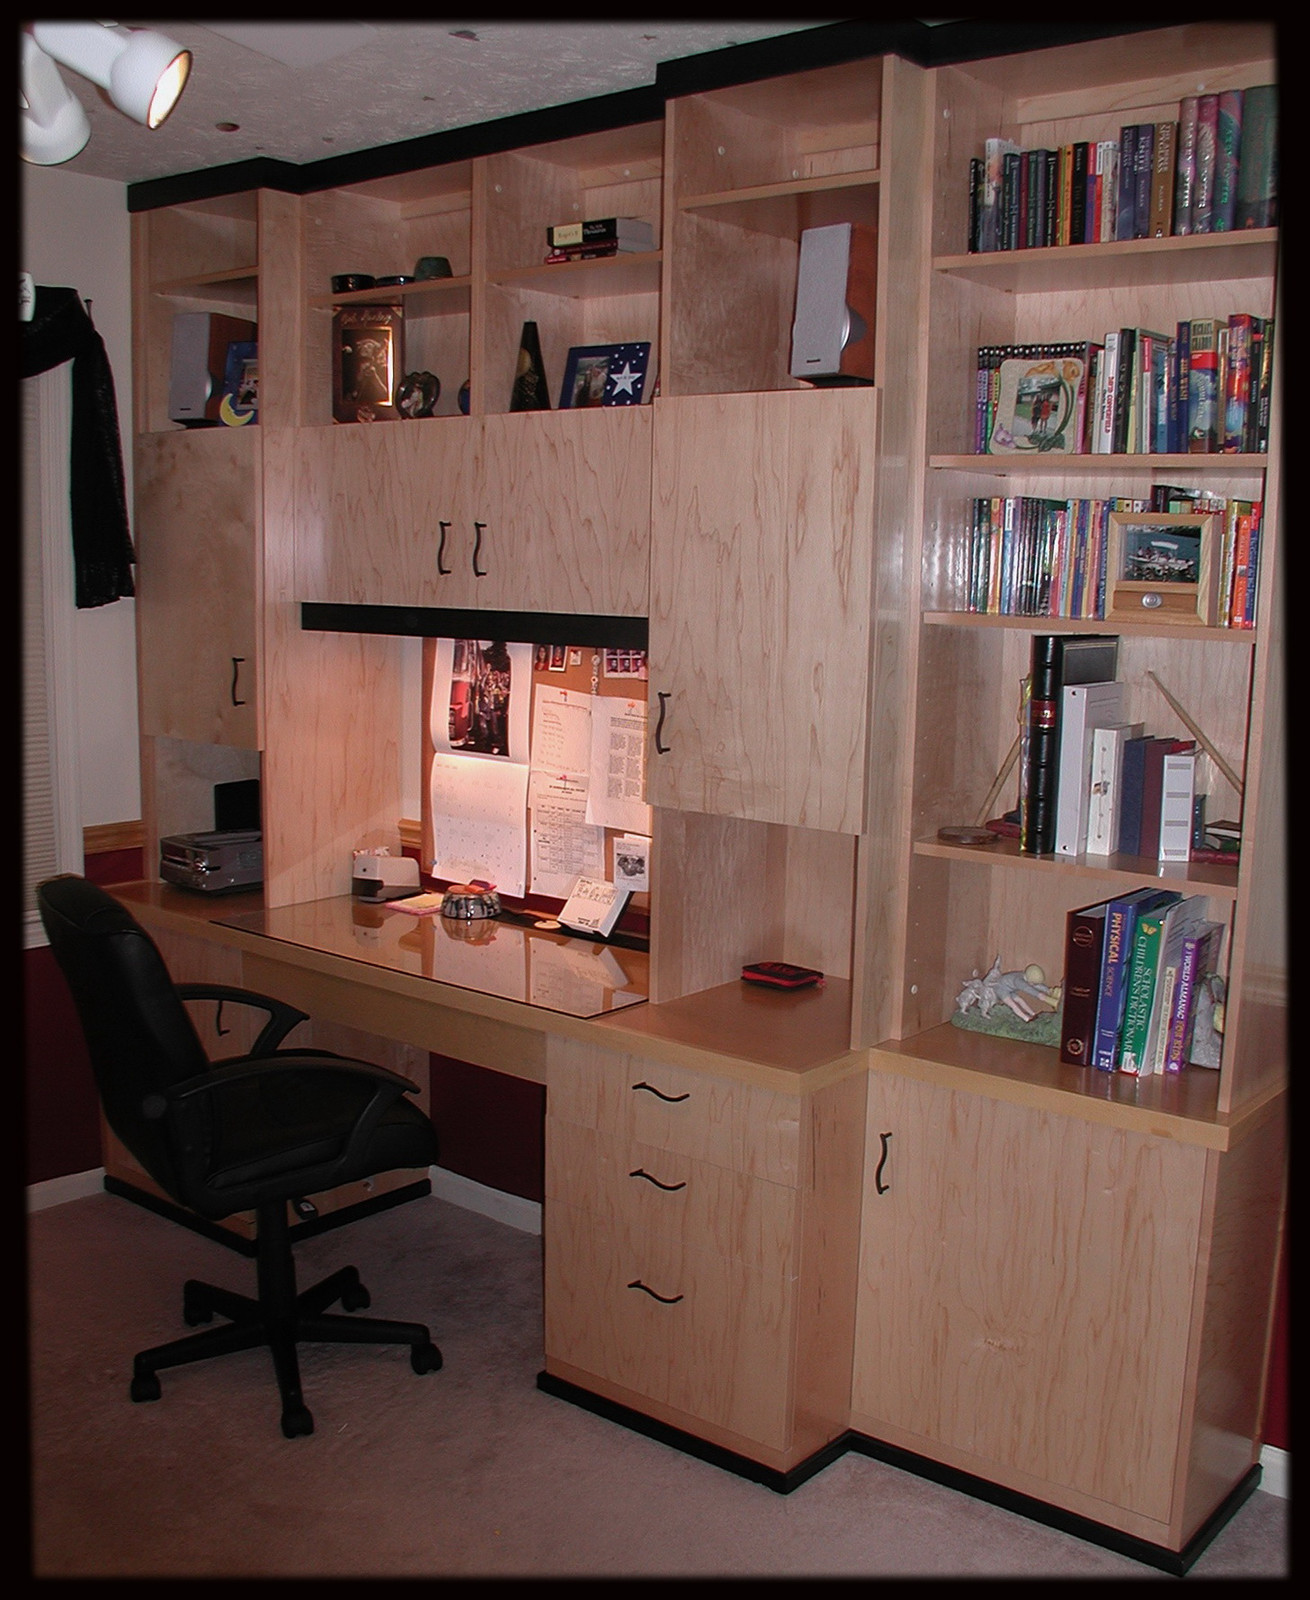 Bon #KR 5 Teenu0027s Contemporary Desk System Northern Virginia Custom Cabinets And  Shelves | Custom Cabinet | Manassas| Brave Custom Woodworking Solutions